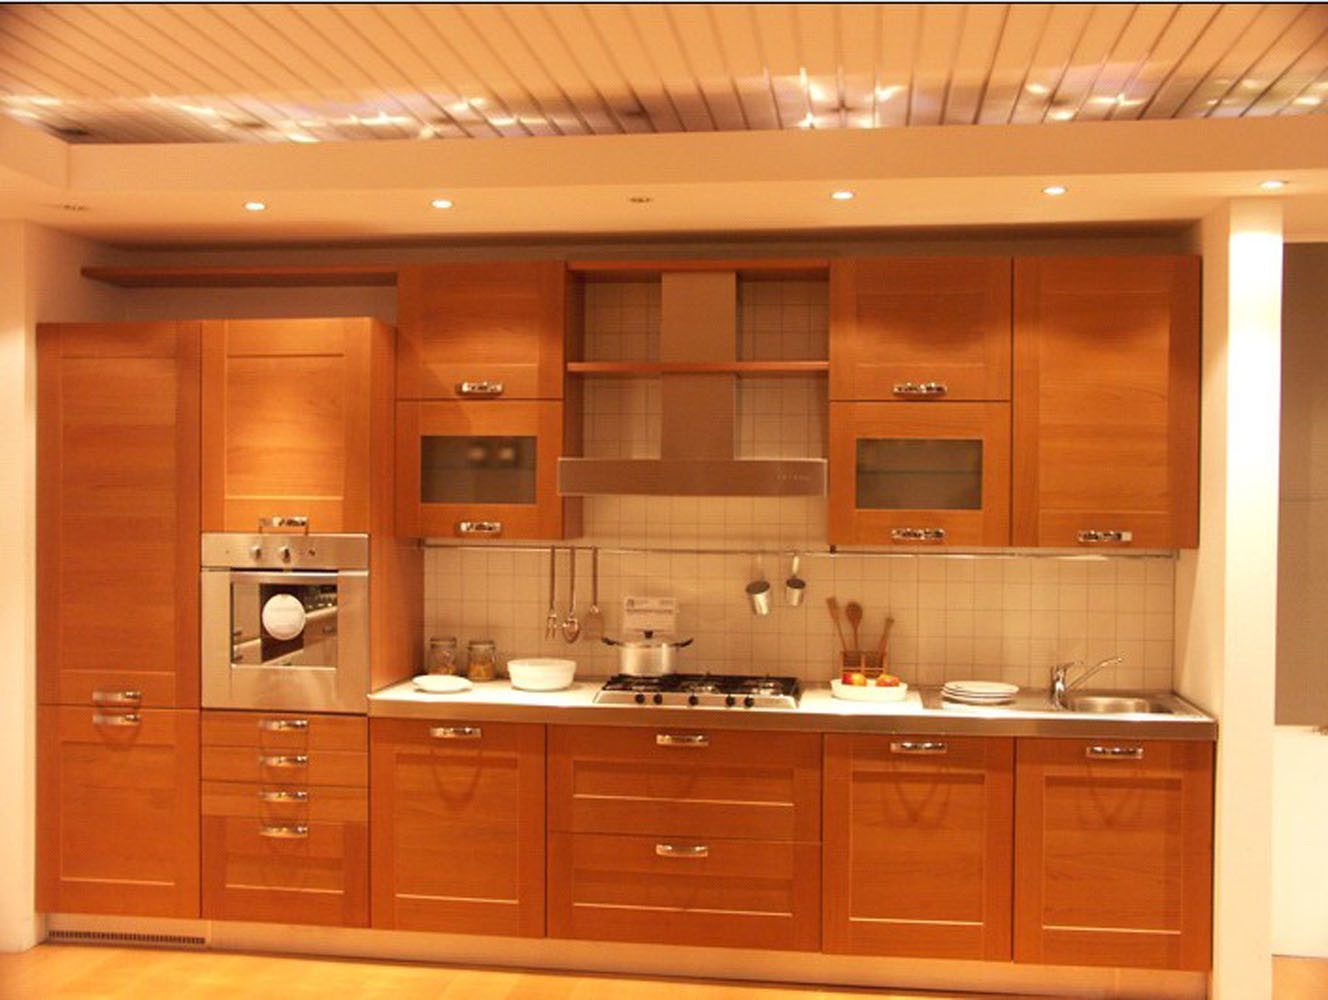 Shaker style kitchen afreakatheart for Pictures of kitchen cupboards